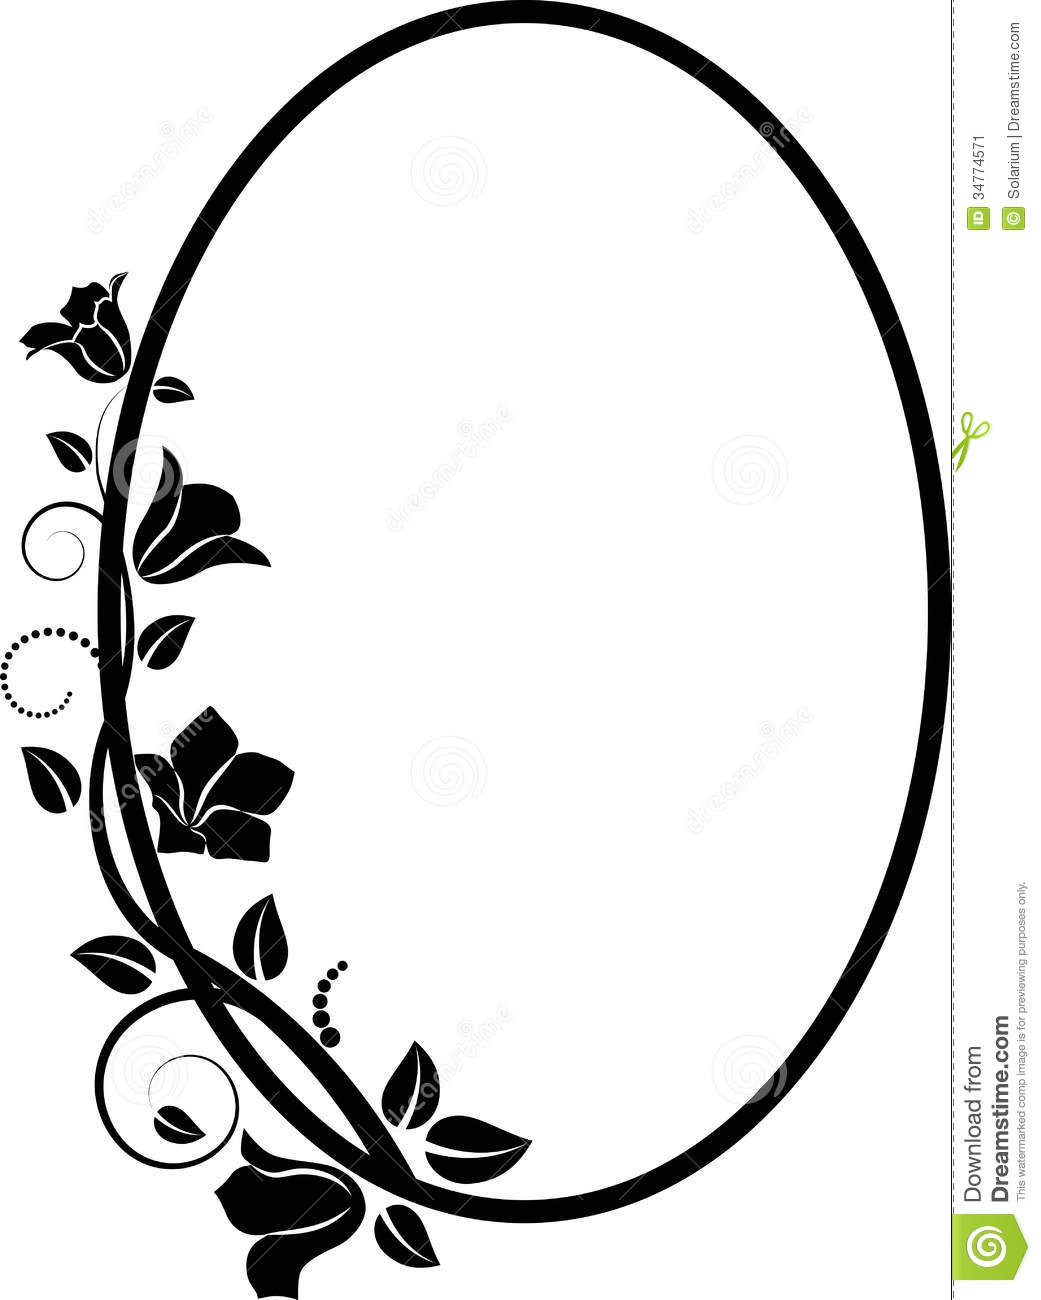 floral frame stock vector illustration of oval isolated 34774571 rh dreamstime com frame clip art free download frame clipart free download